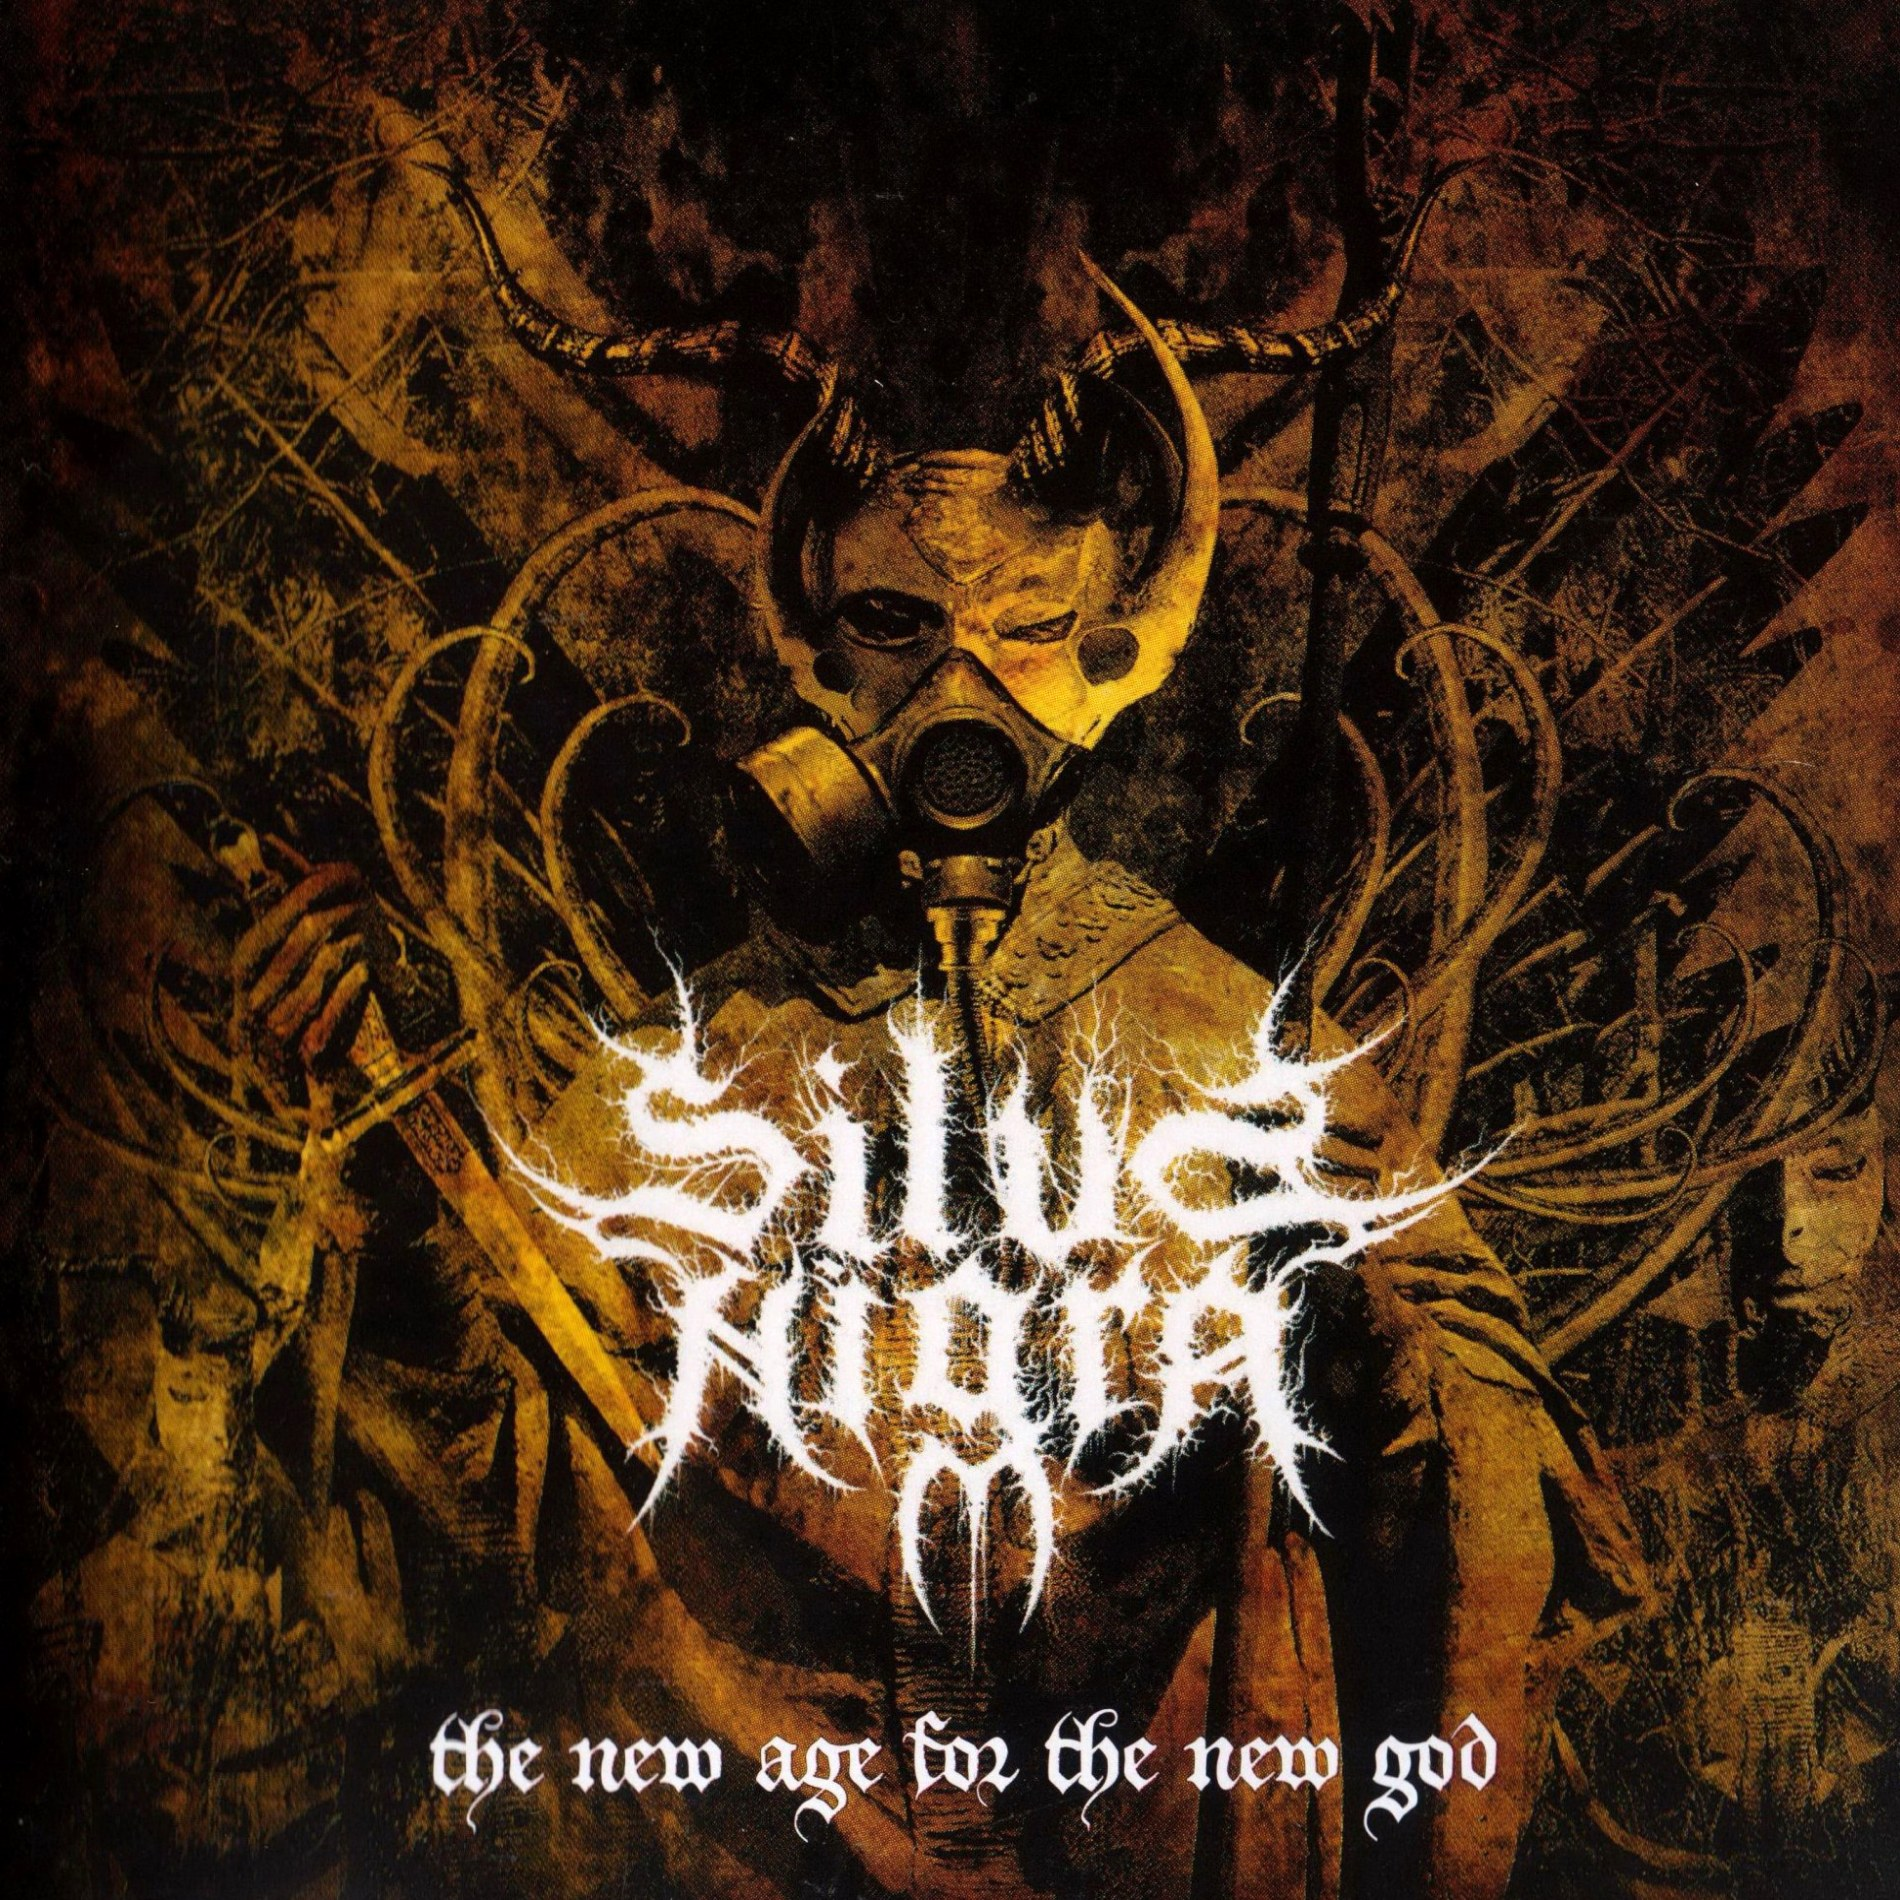 Review for Silva Nigra - The New Age for the New God